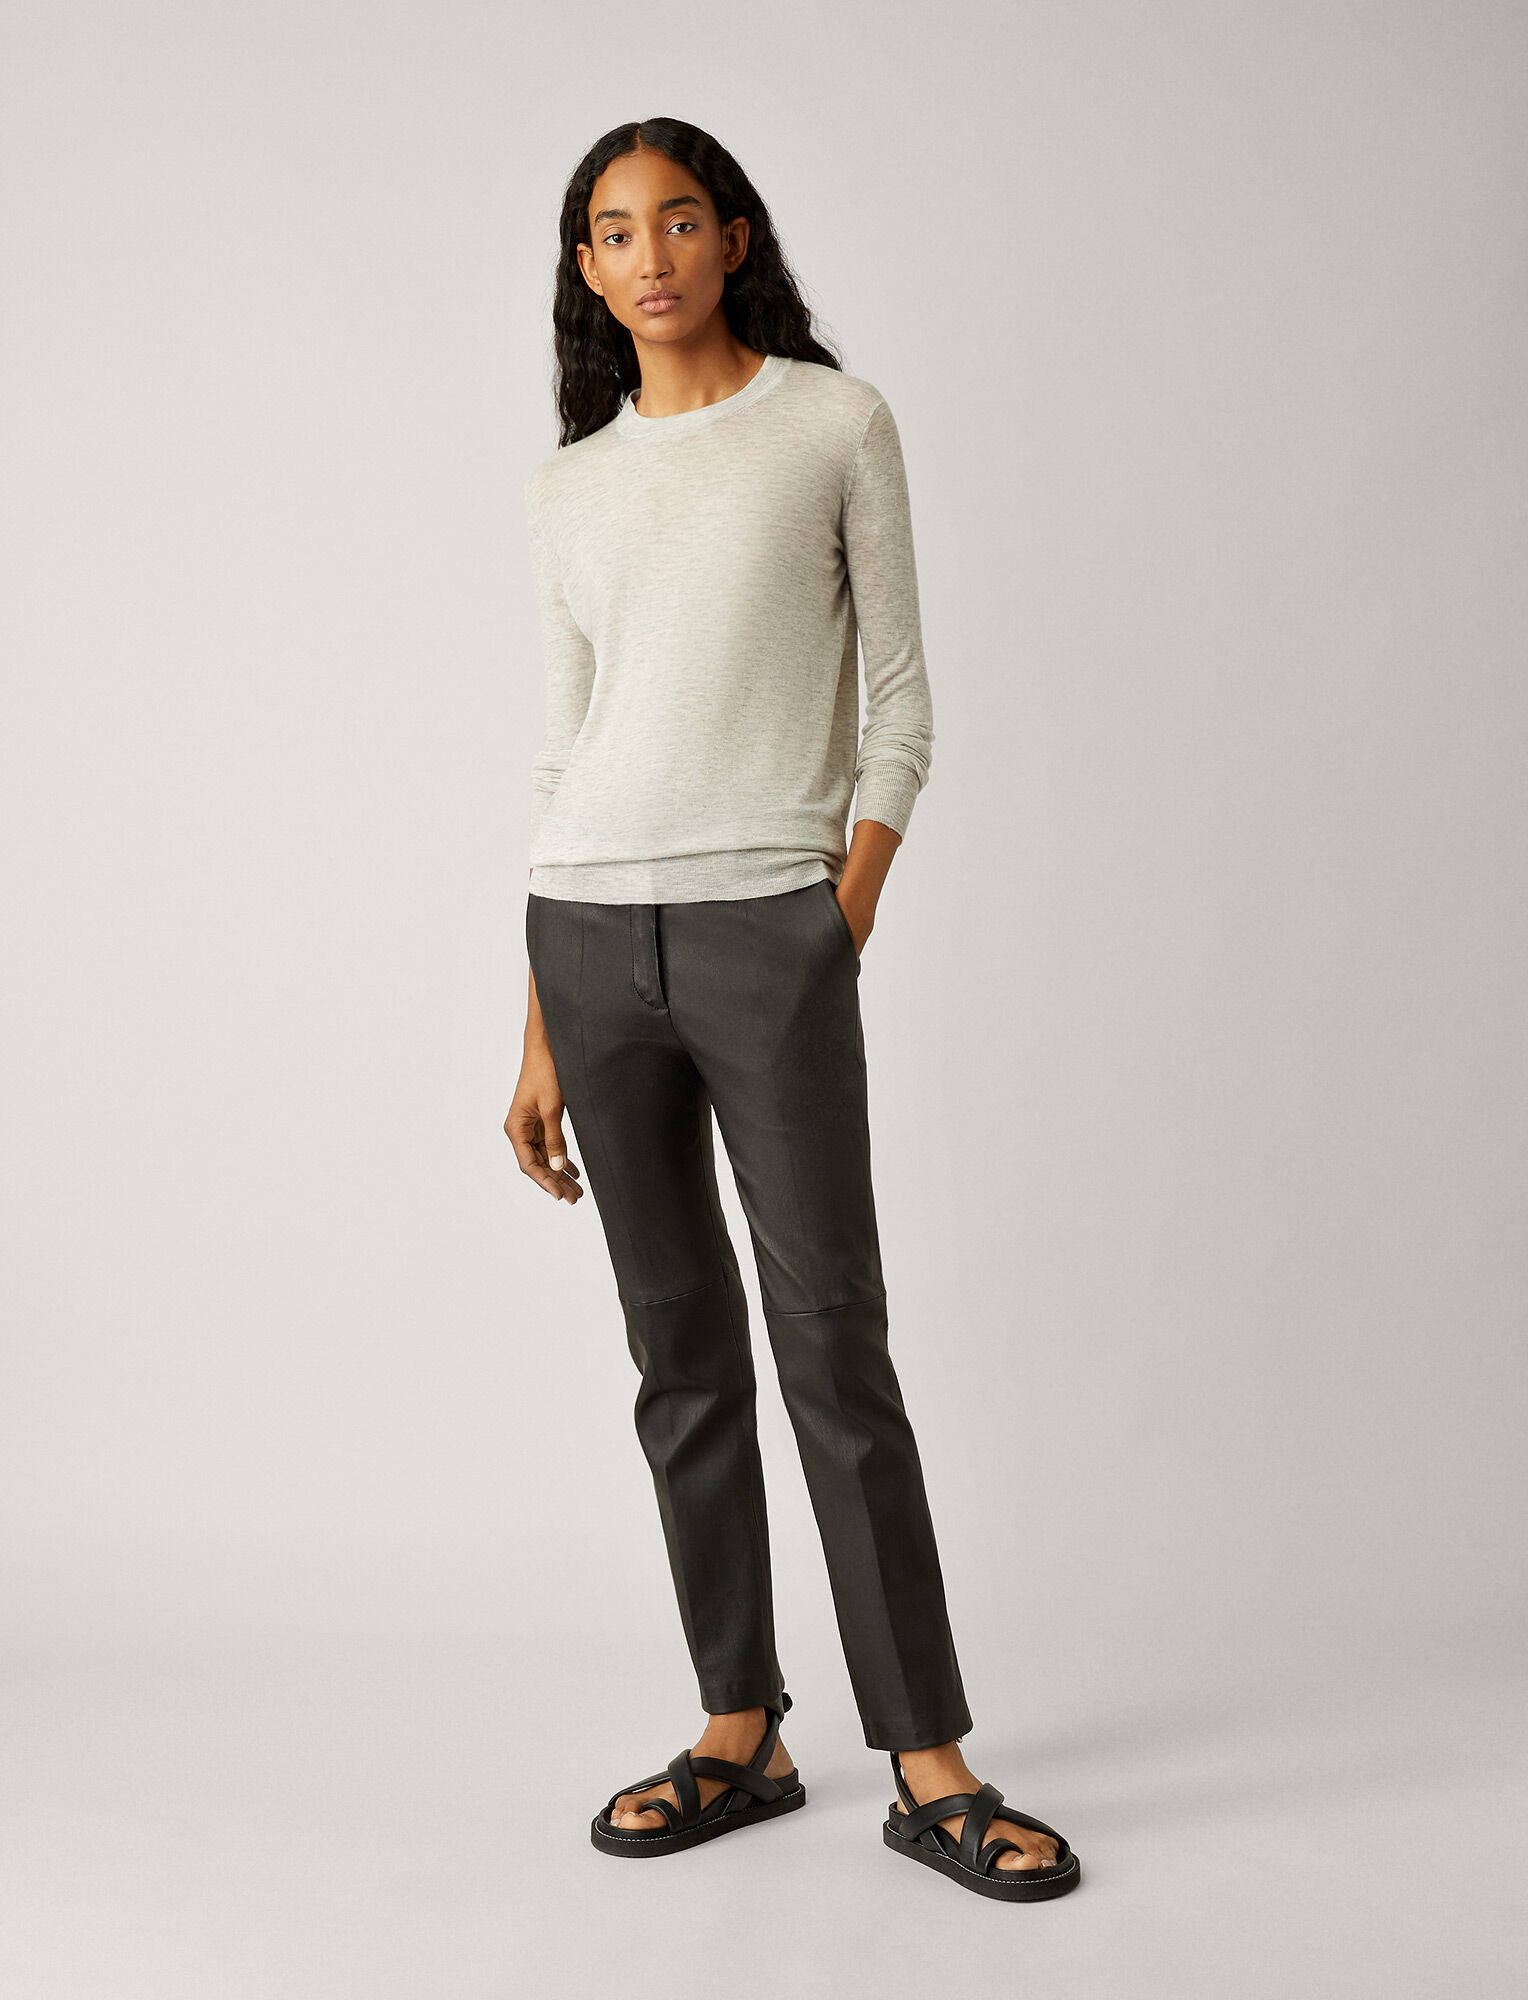 Joseph, Cashair Knit, in GREY CHINE